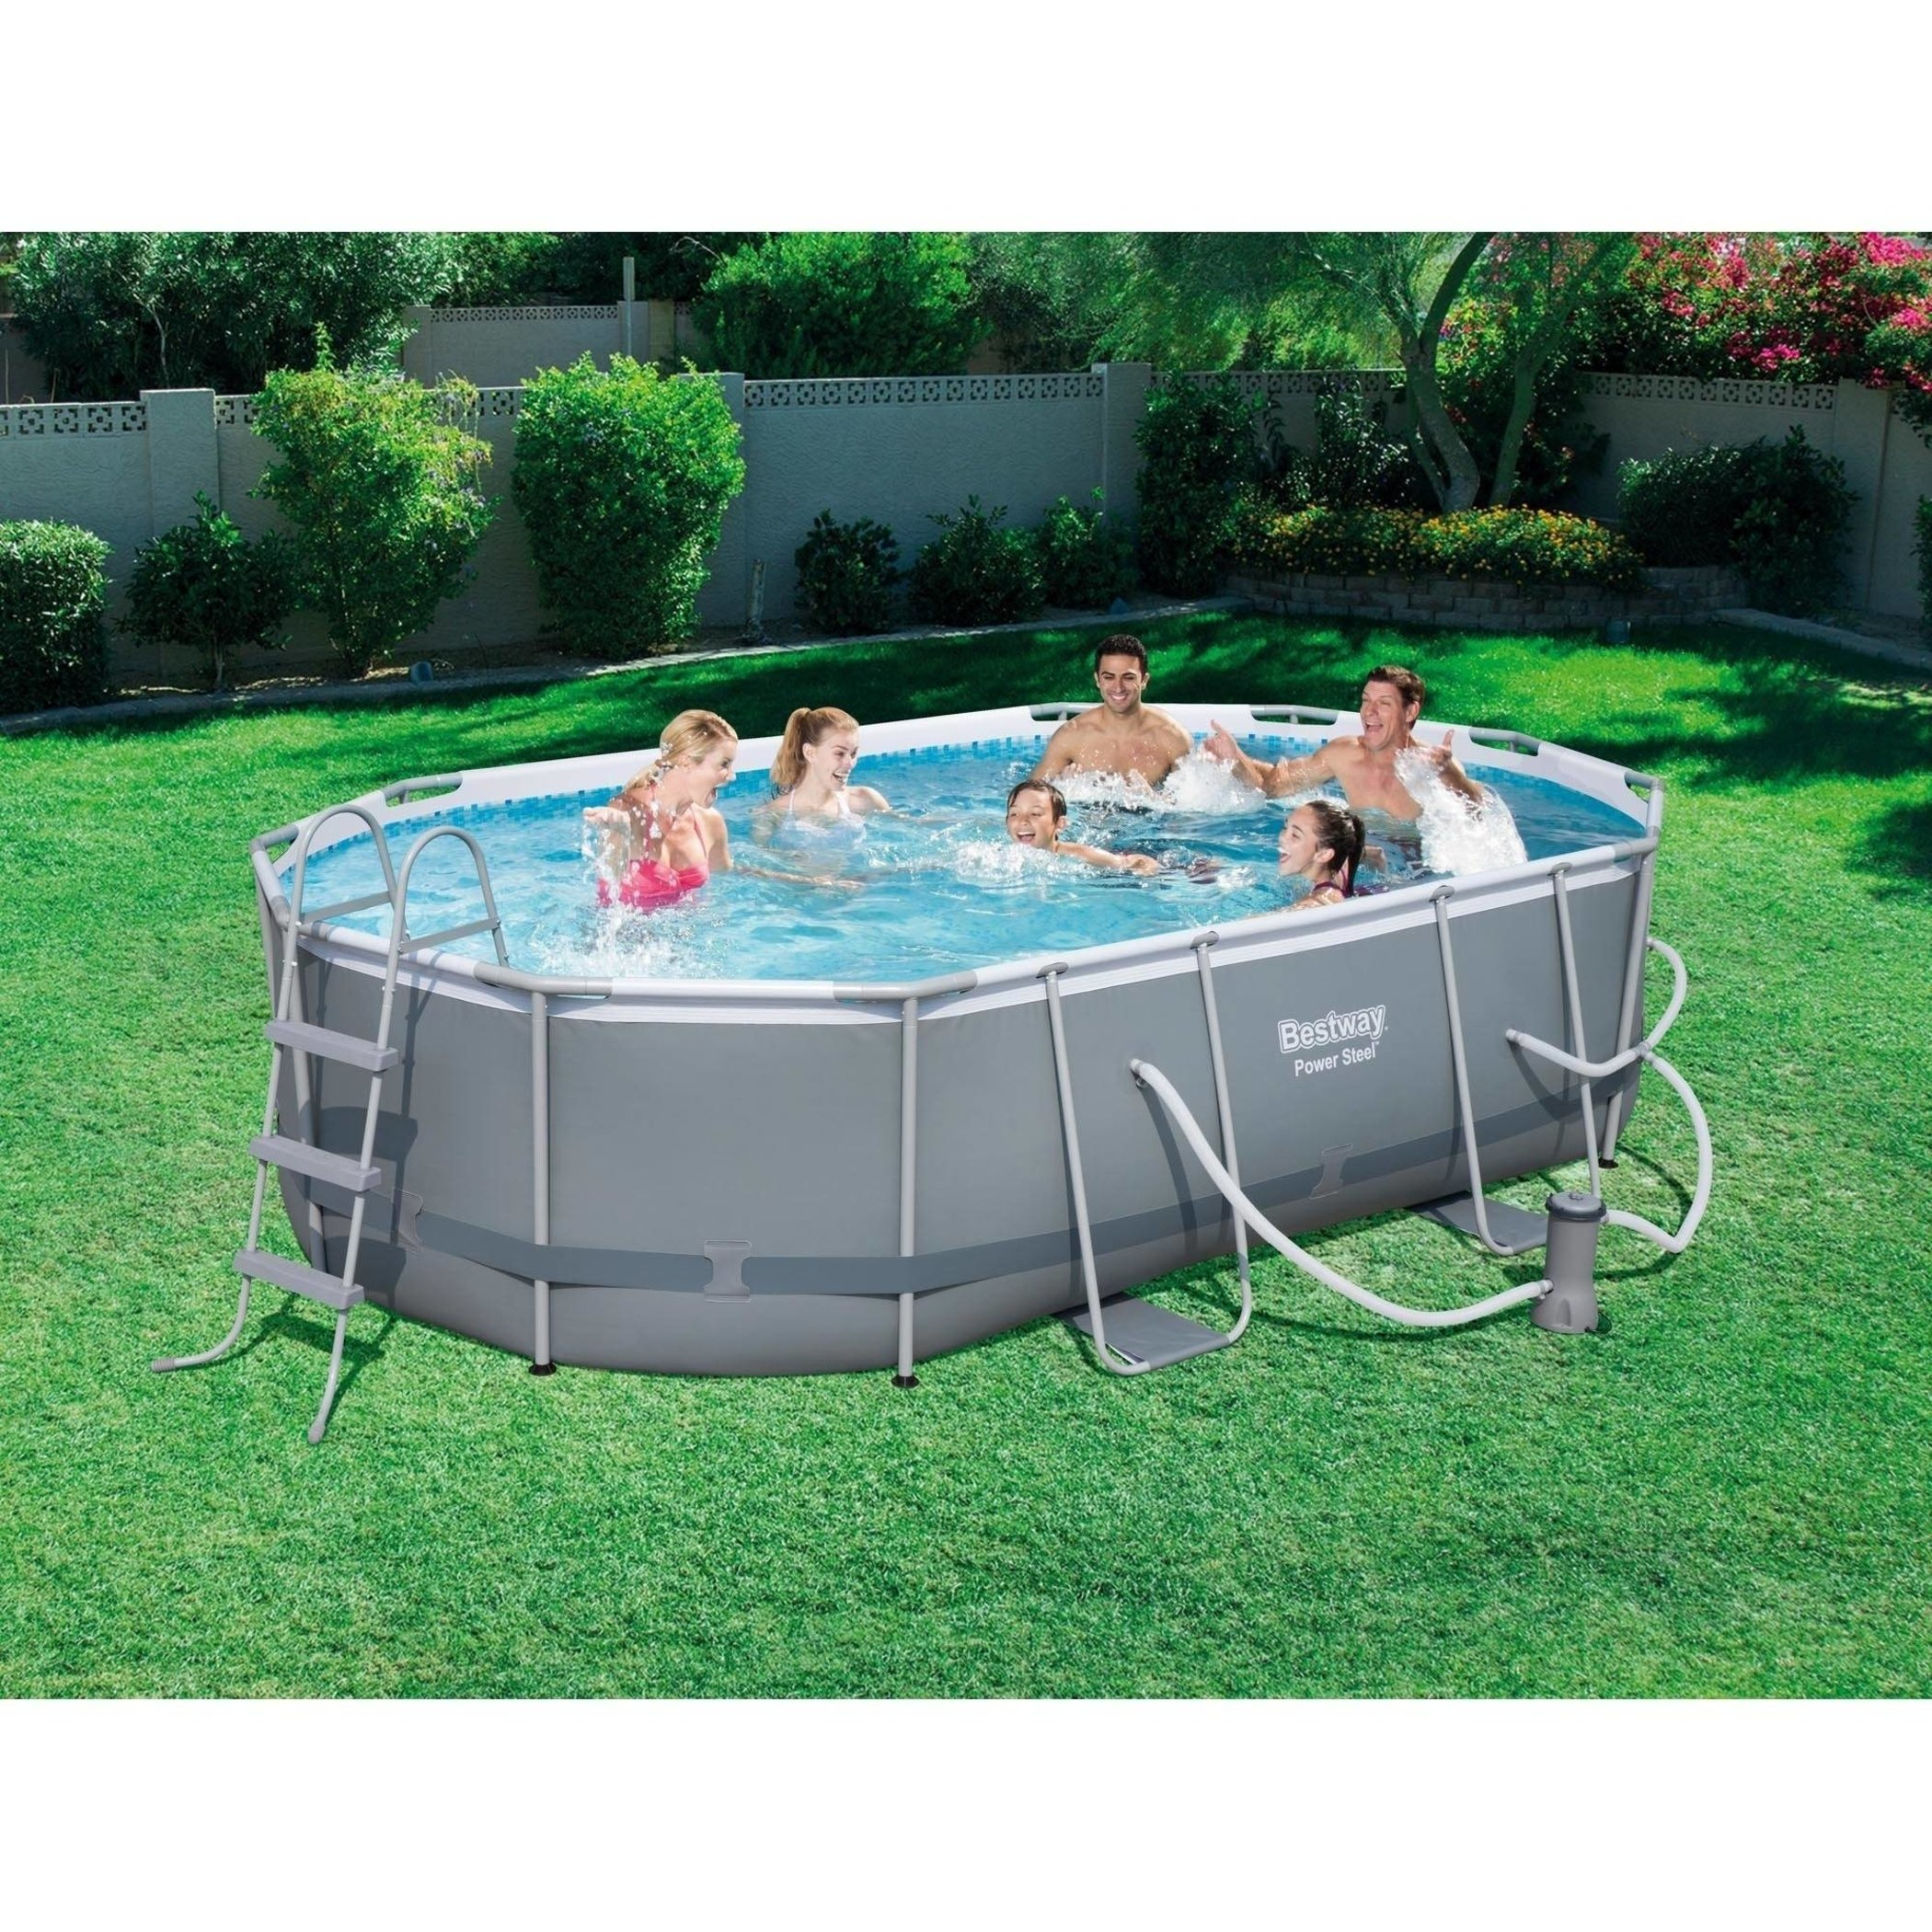 Power Steel 16' x 10' x 42'' Oval Frame Swimming Pool Set with Filter Pump, Ground Cloth, Pool Cover and Ladder